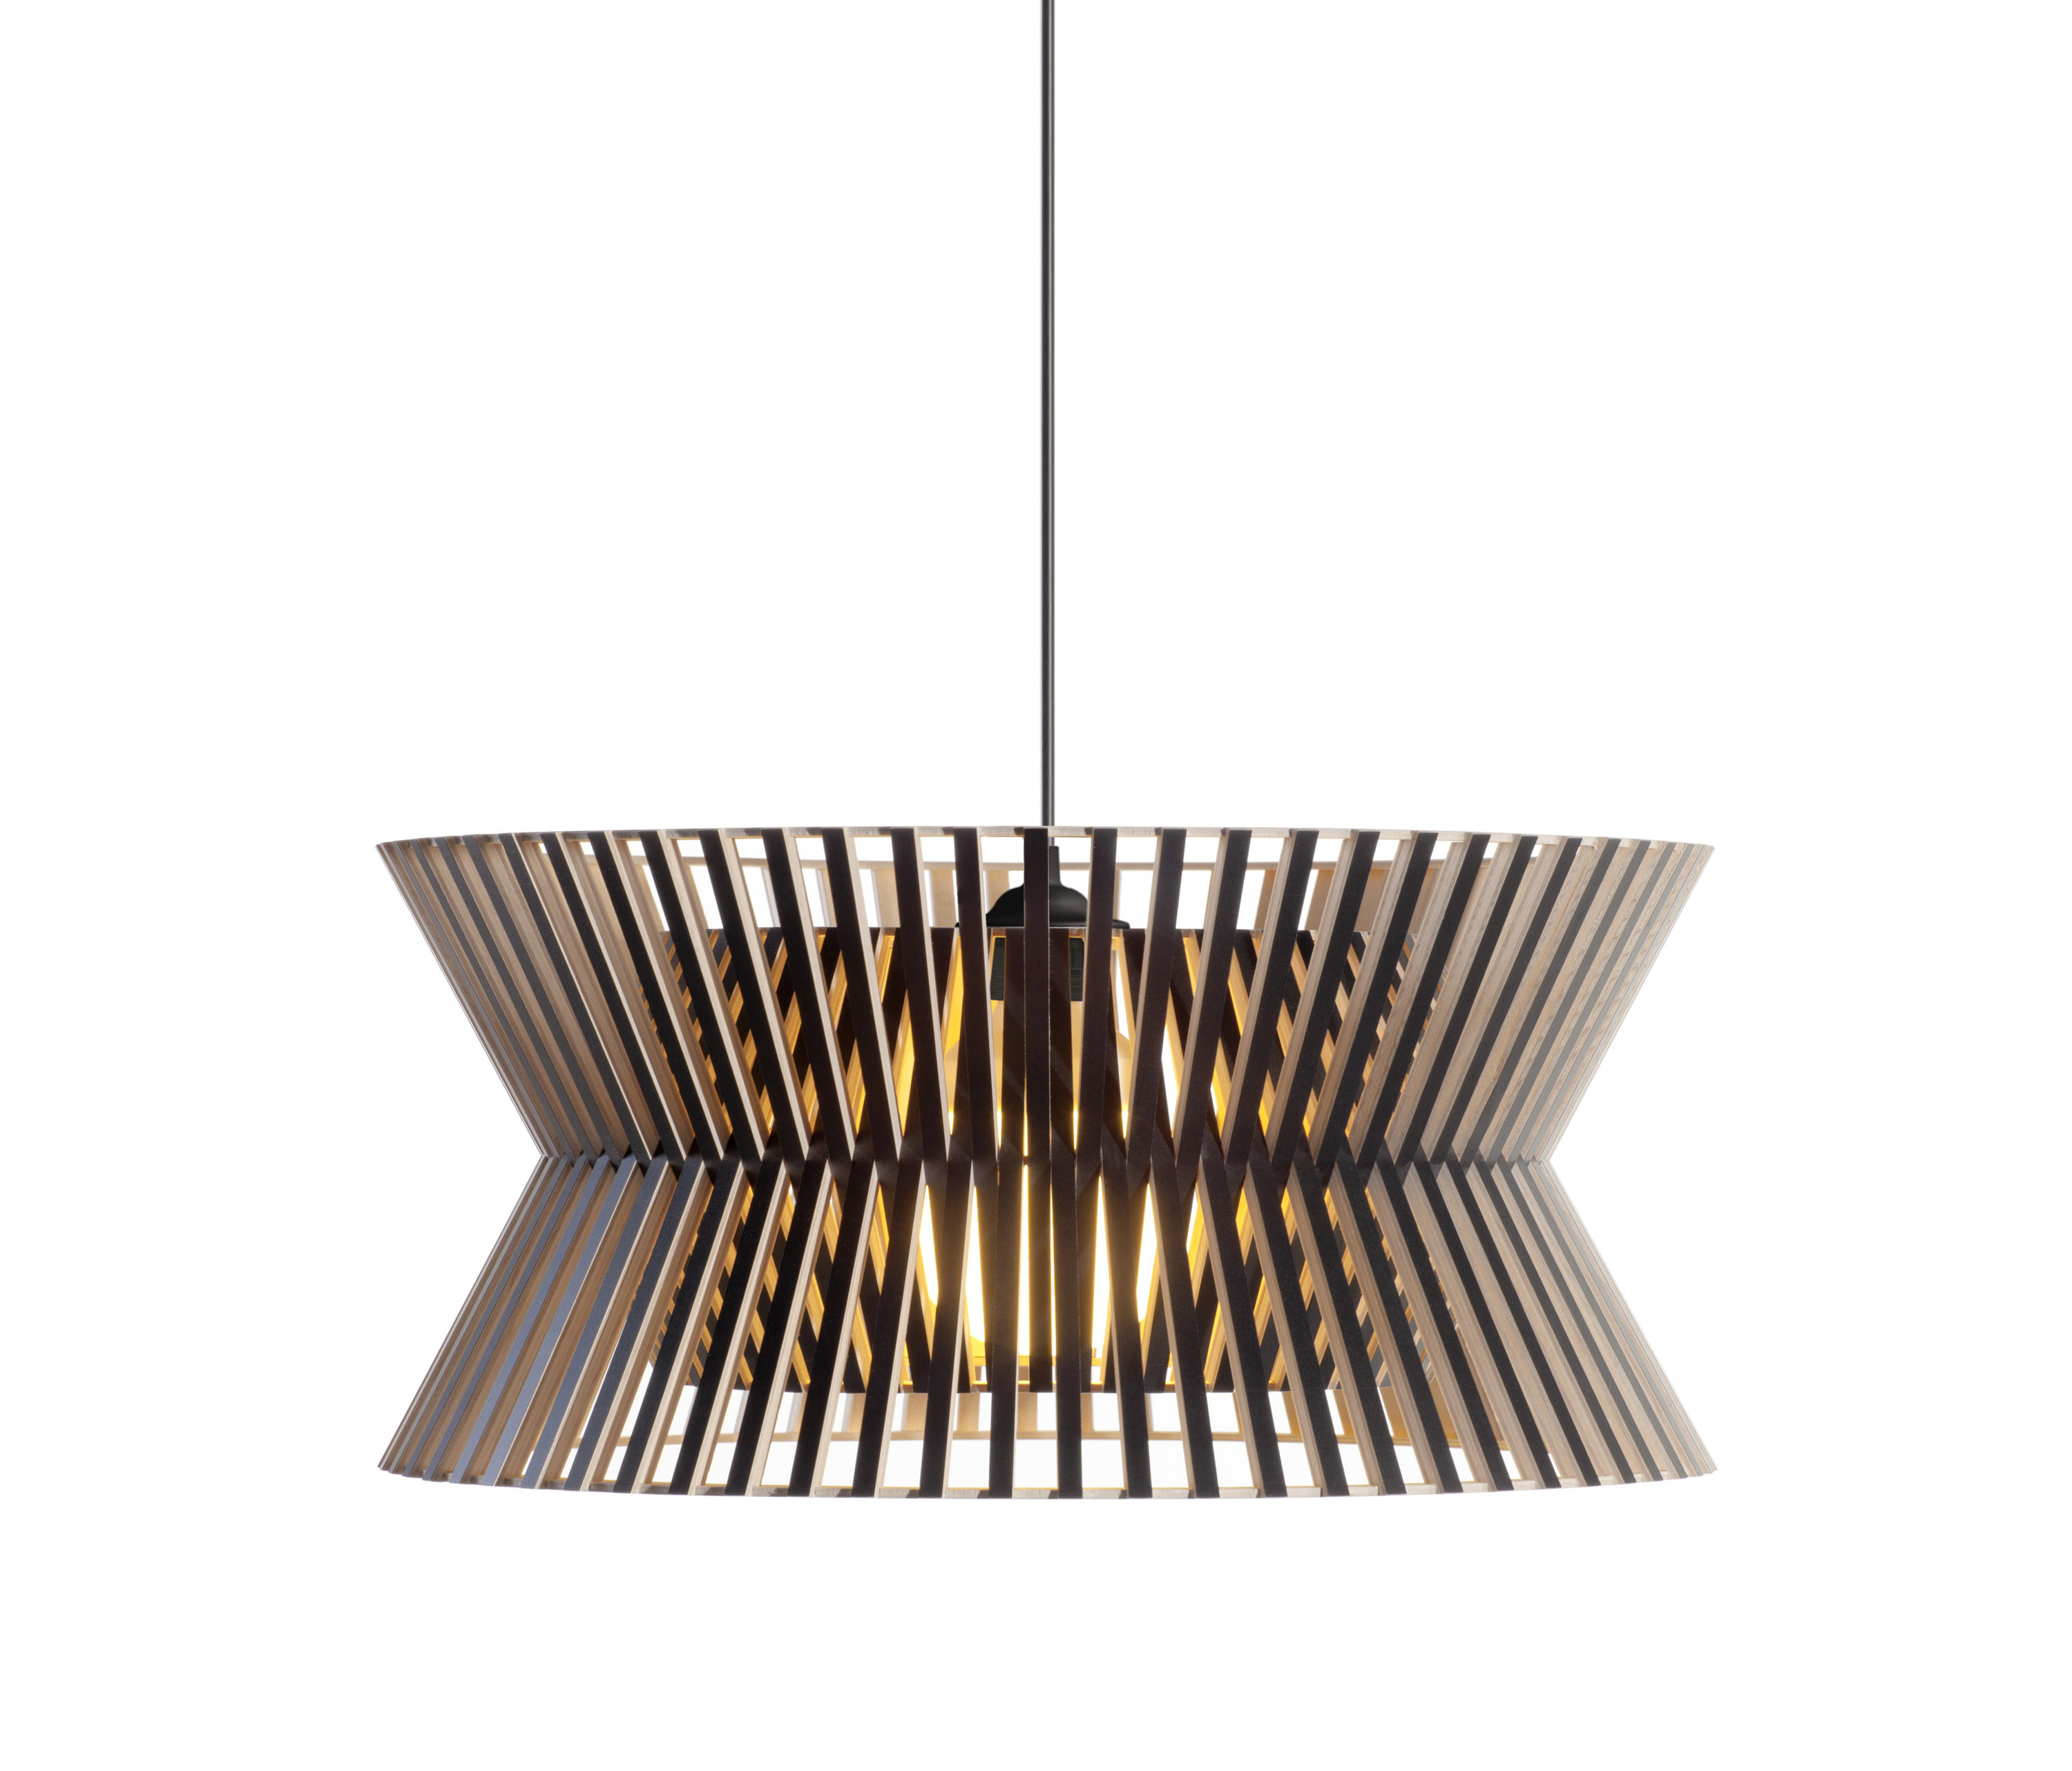 kontro 6000 pendant lamp general lighting from secto design architonic. Black Bedroom Furniture Sets. Home Design Ideas